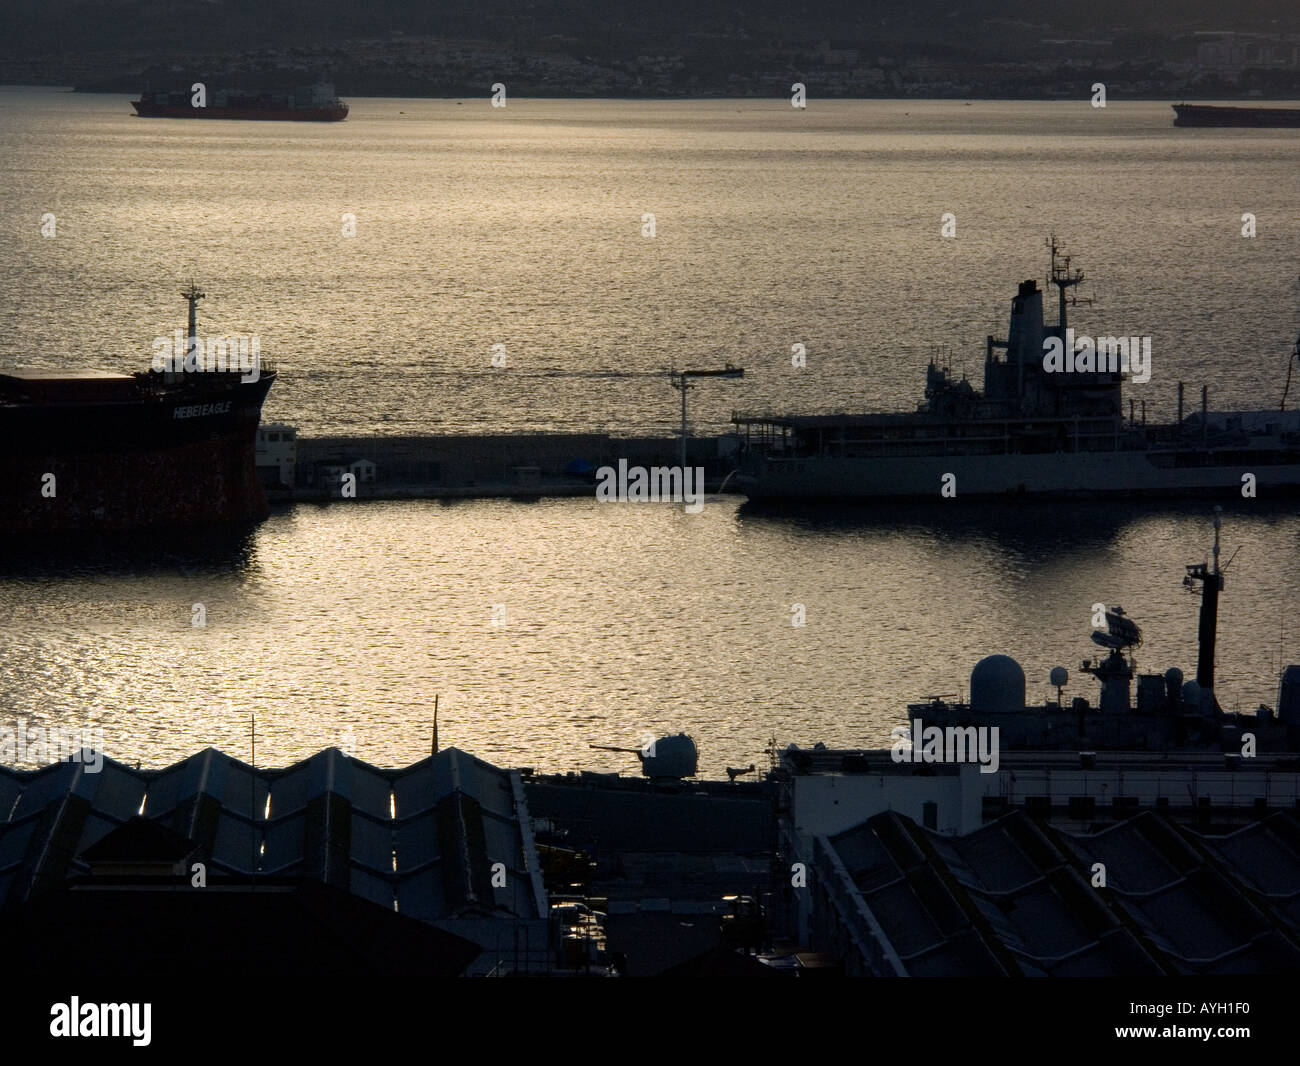 Dusk over the Bay of Gibraltar, Europe, Tankers, Warships, - Stock Image